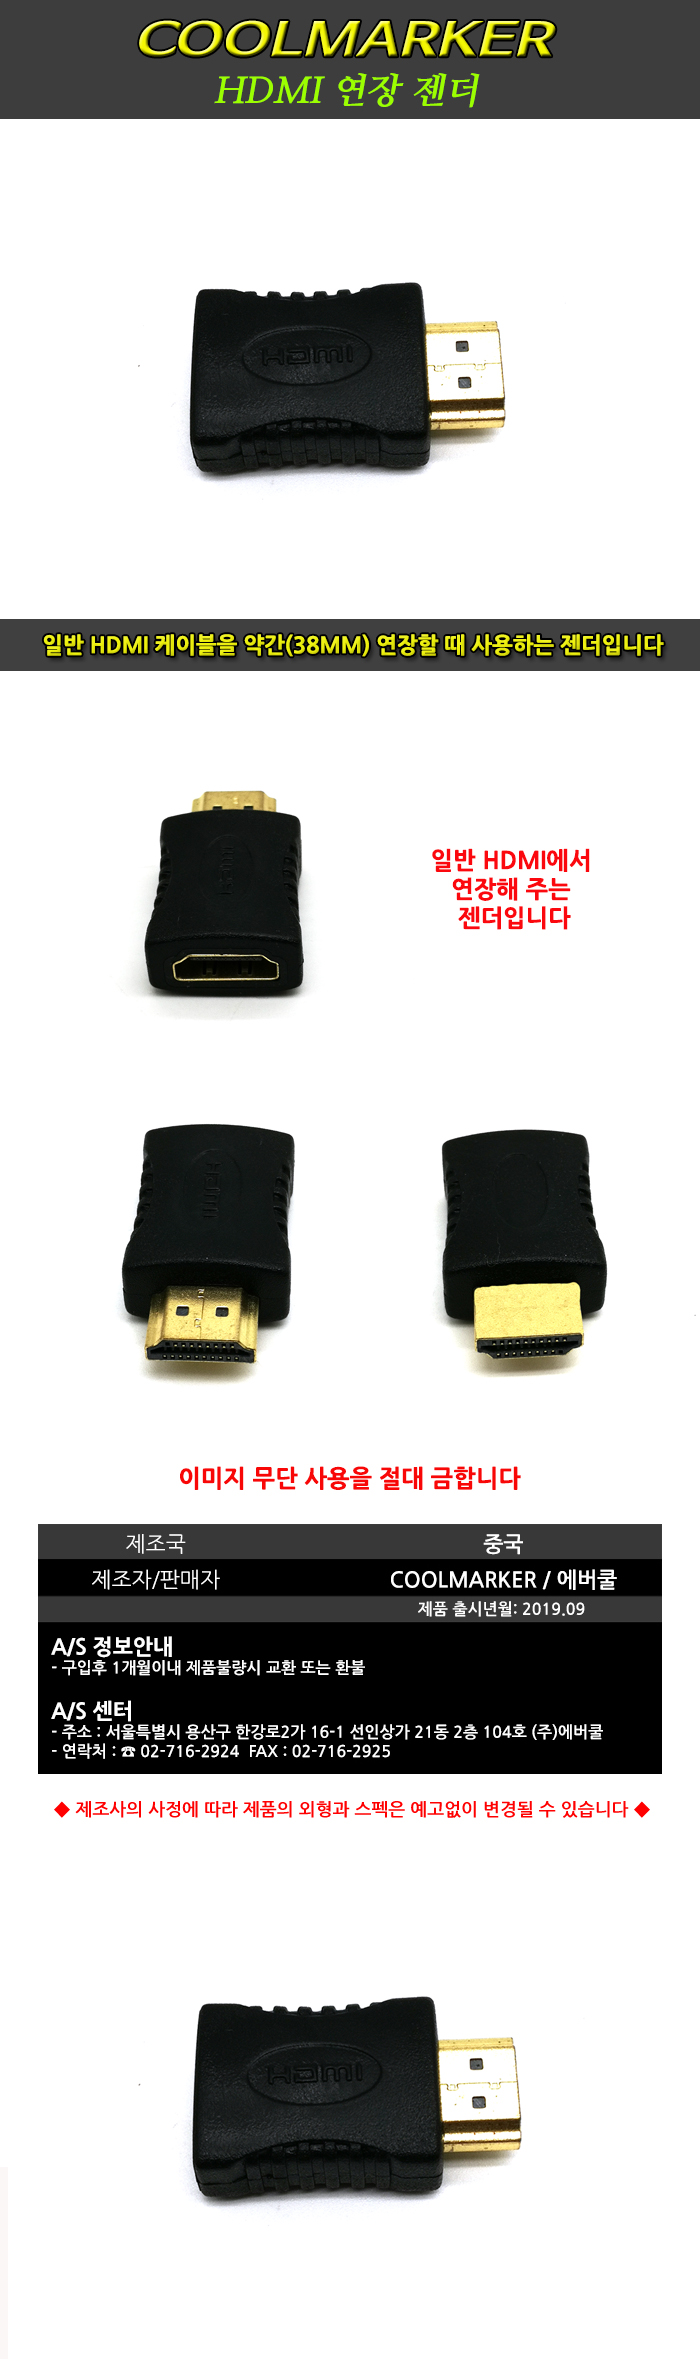 EVERCOOL COOLMARKER HDMI to HDM 연장 젠더 (HDMIEX)